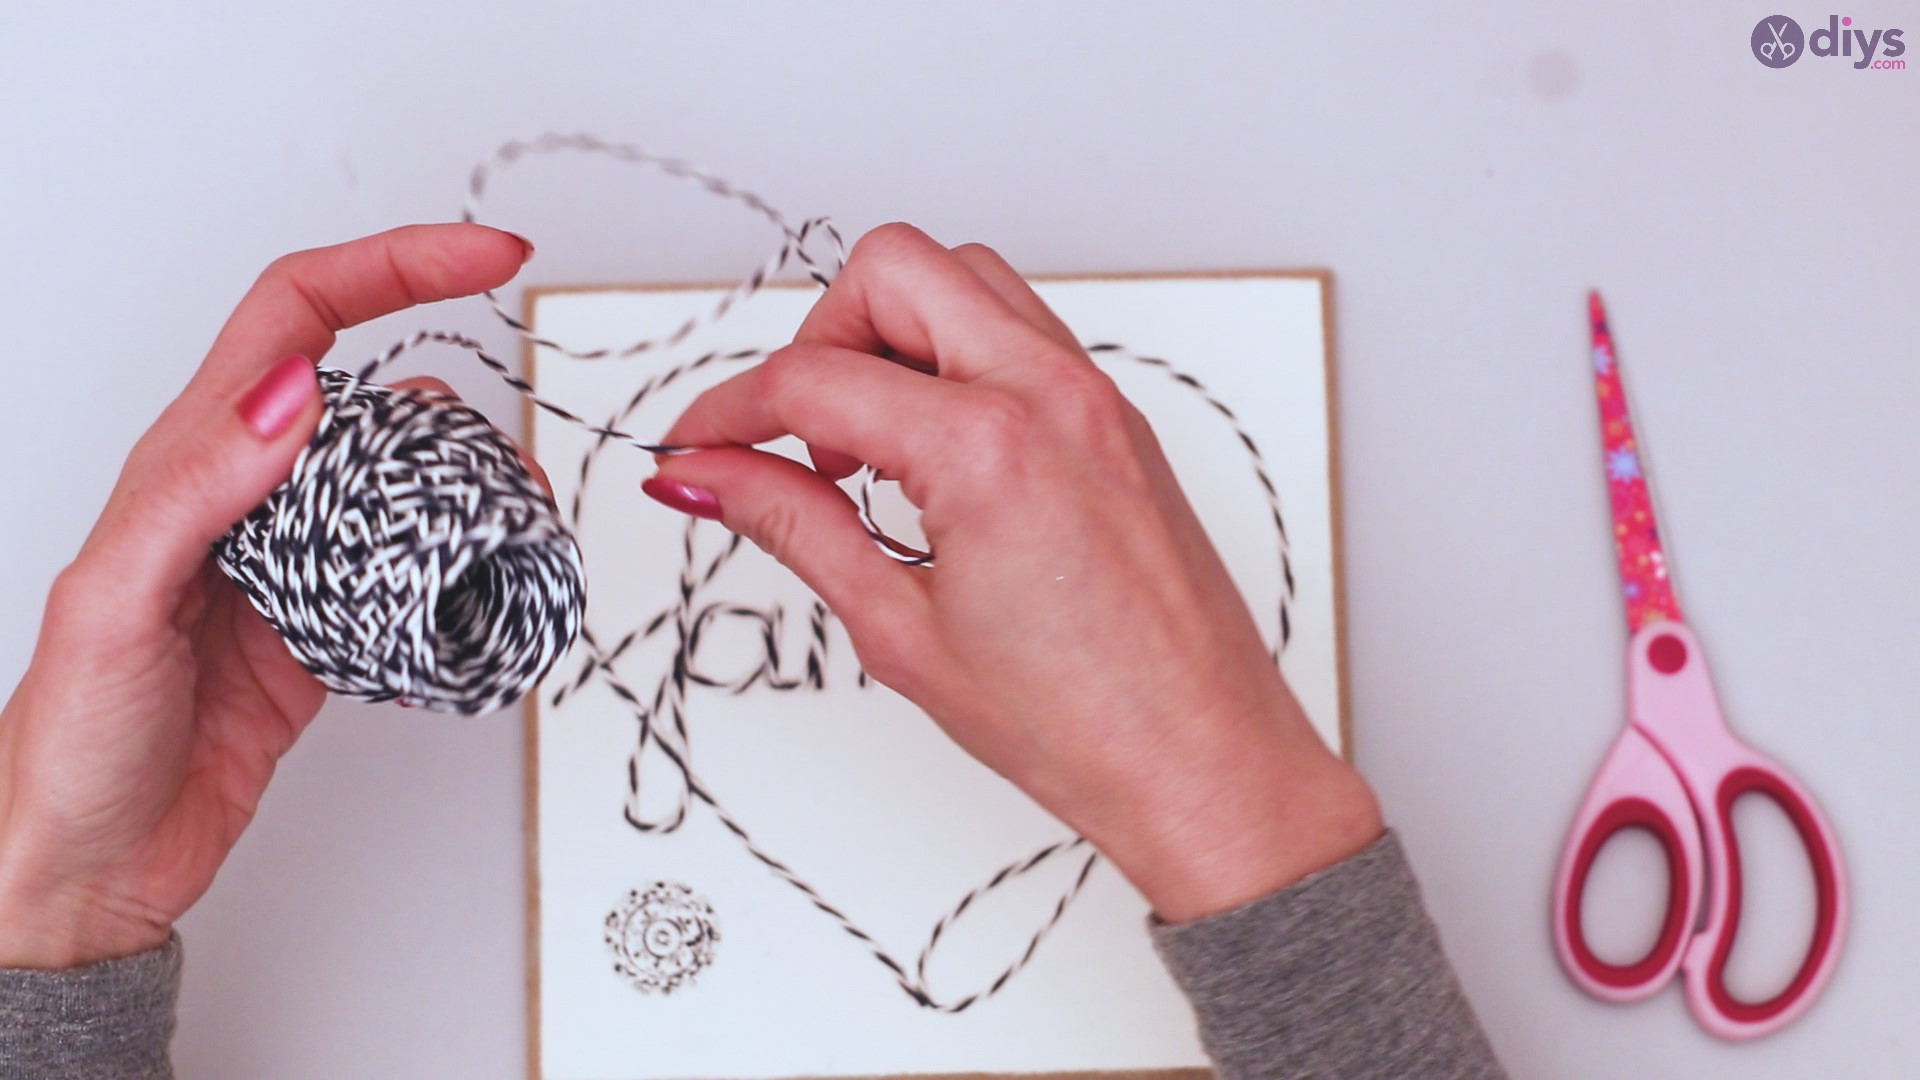 Twine string wall decor diy simple project (29)